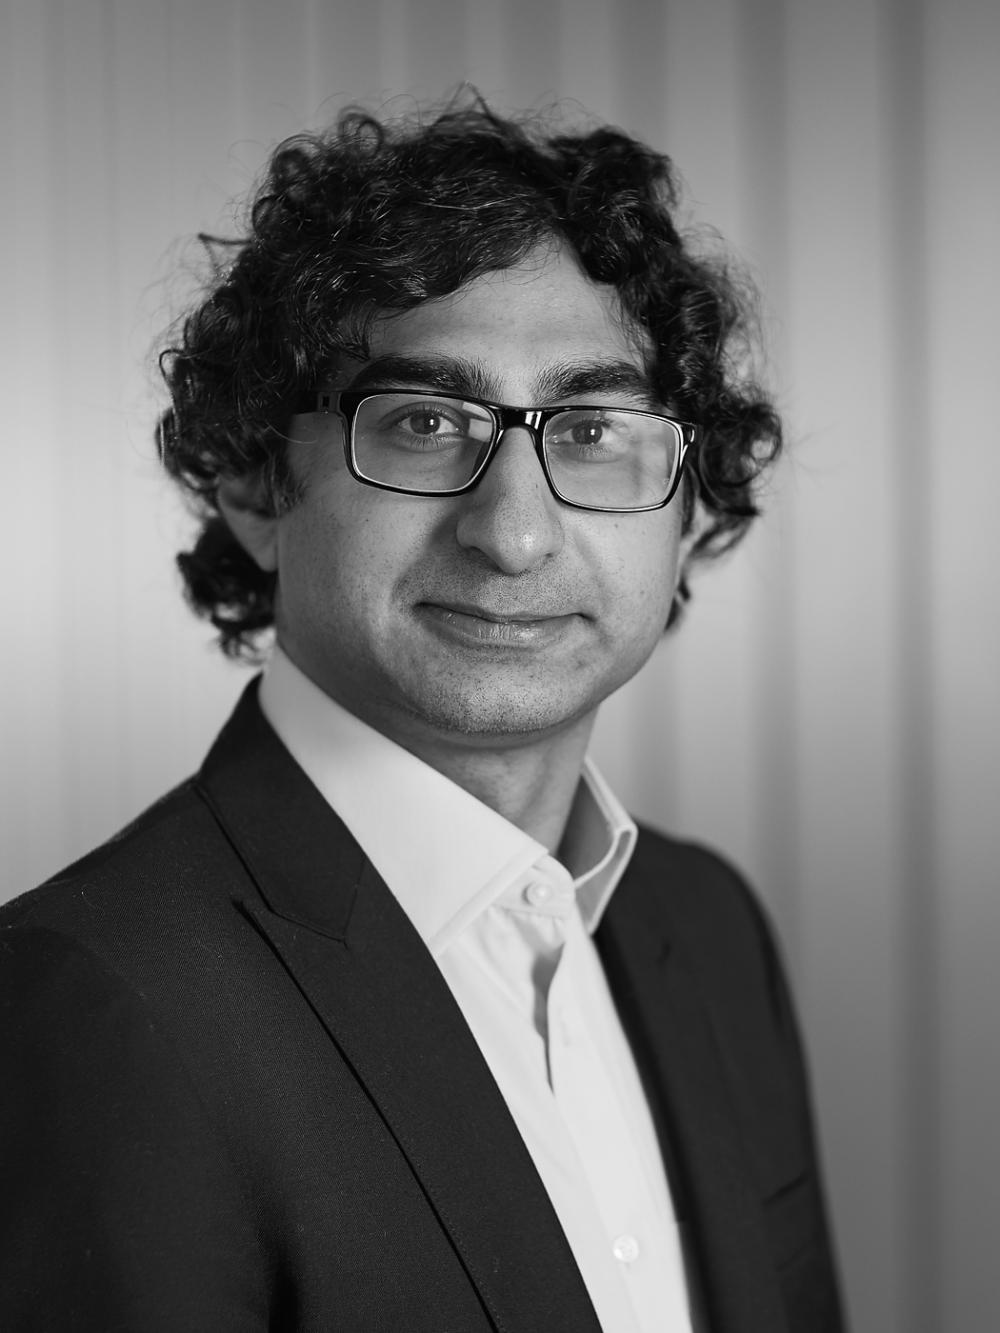 Shaukat Ali (Photo: Bård Gudim)